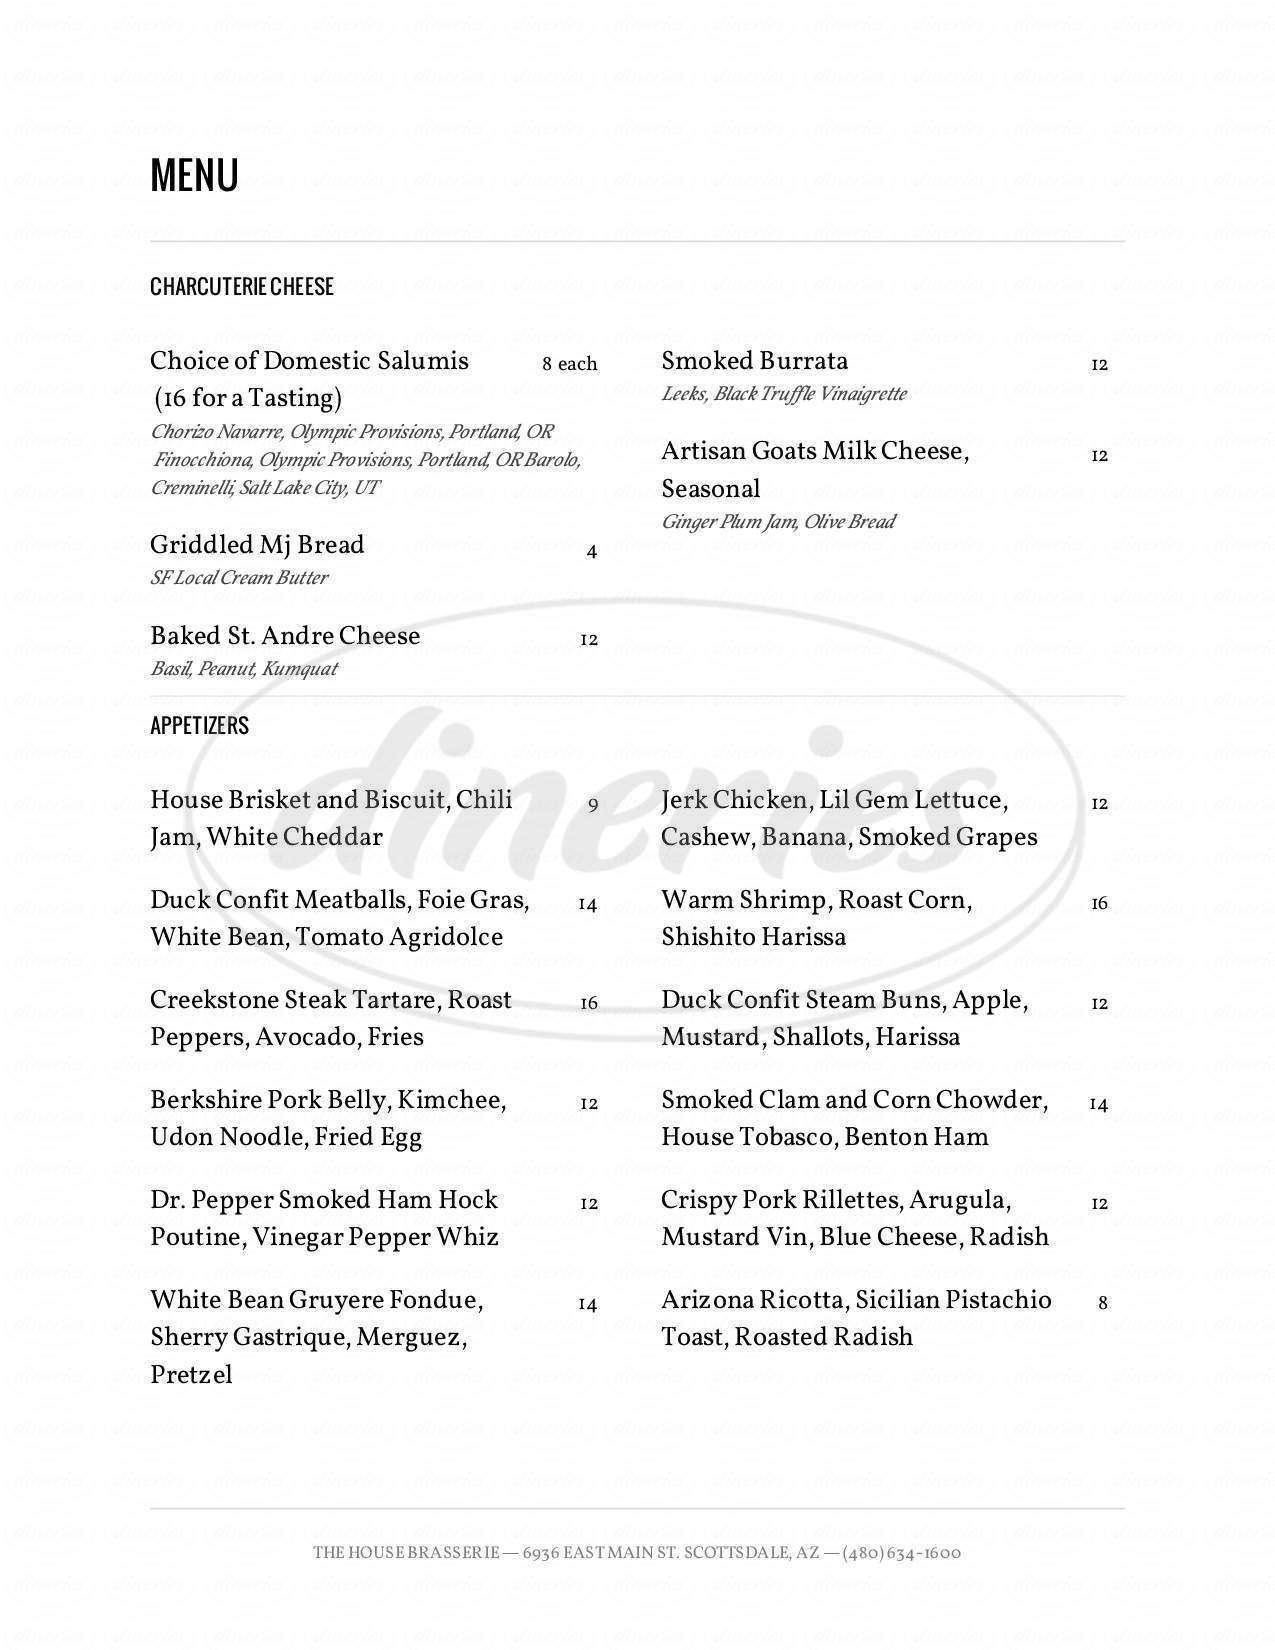 menu for The House Brasserie